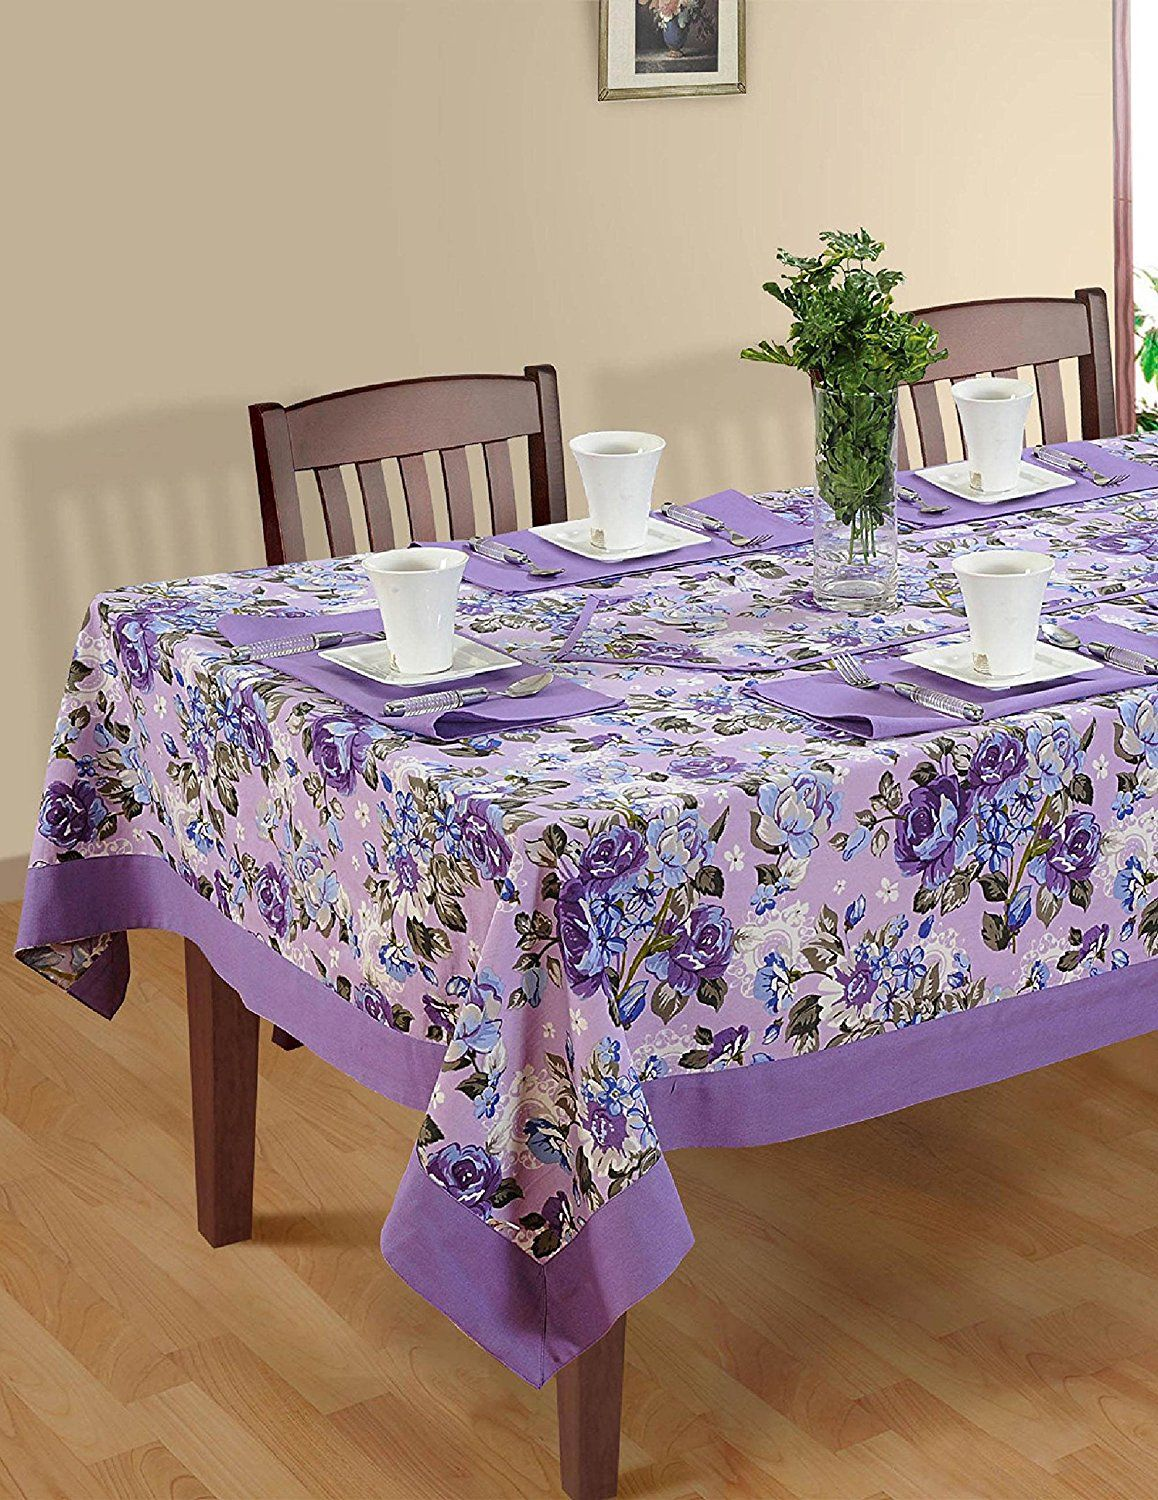 Awesome Colorful Multicolor Cotton Spring Floral Tablecloths Tables 60 X 102  Inches, Purple Border * Startling